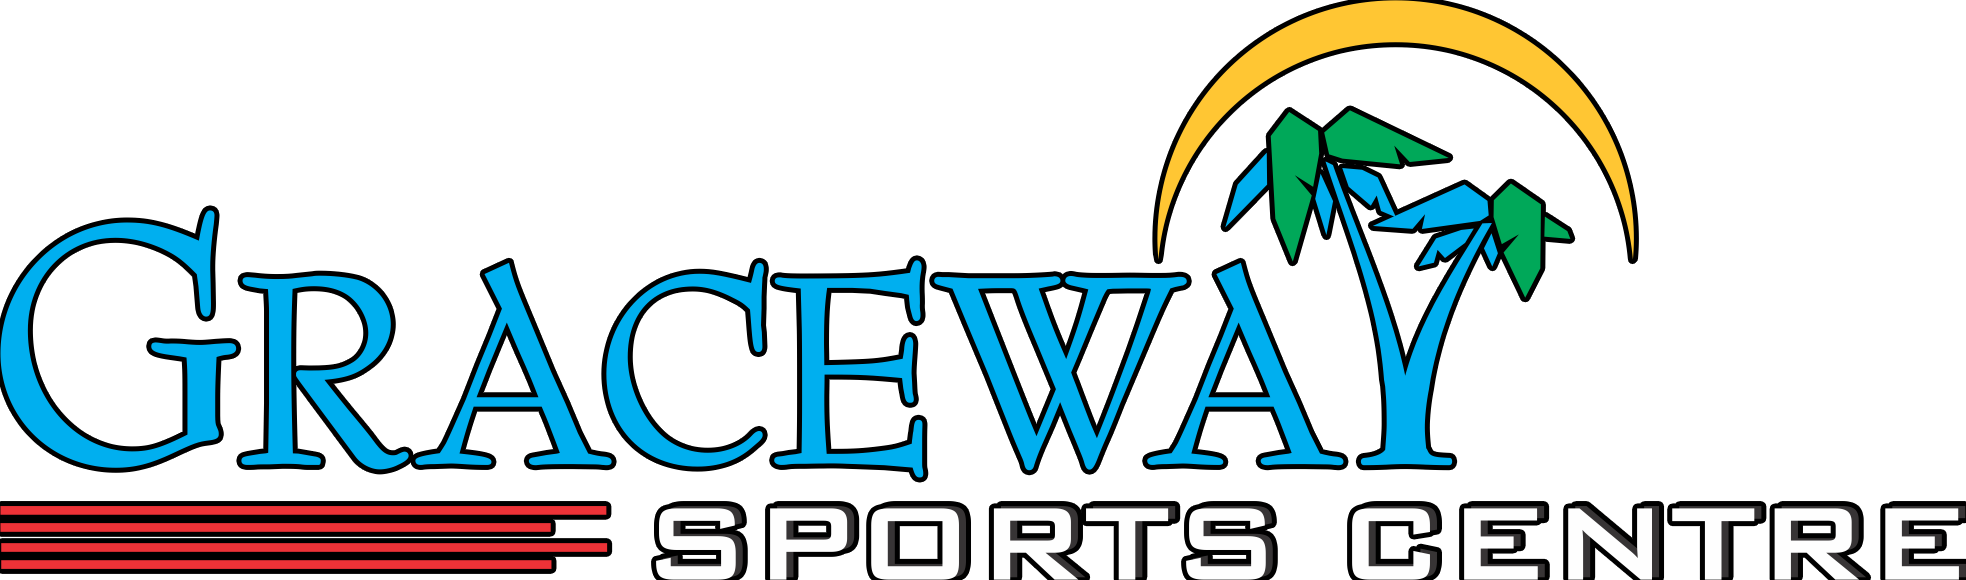 Ball Sports | Graceway Sports Center